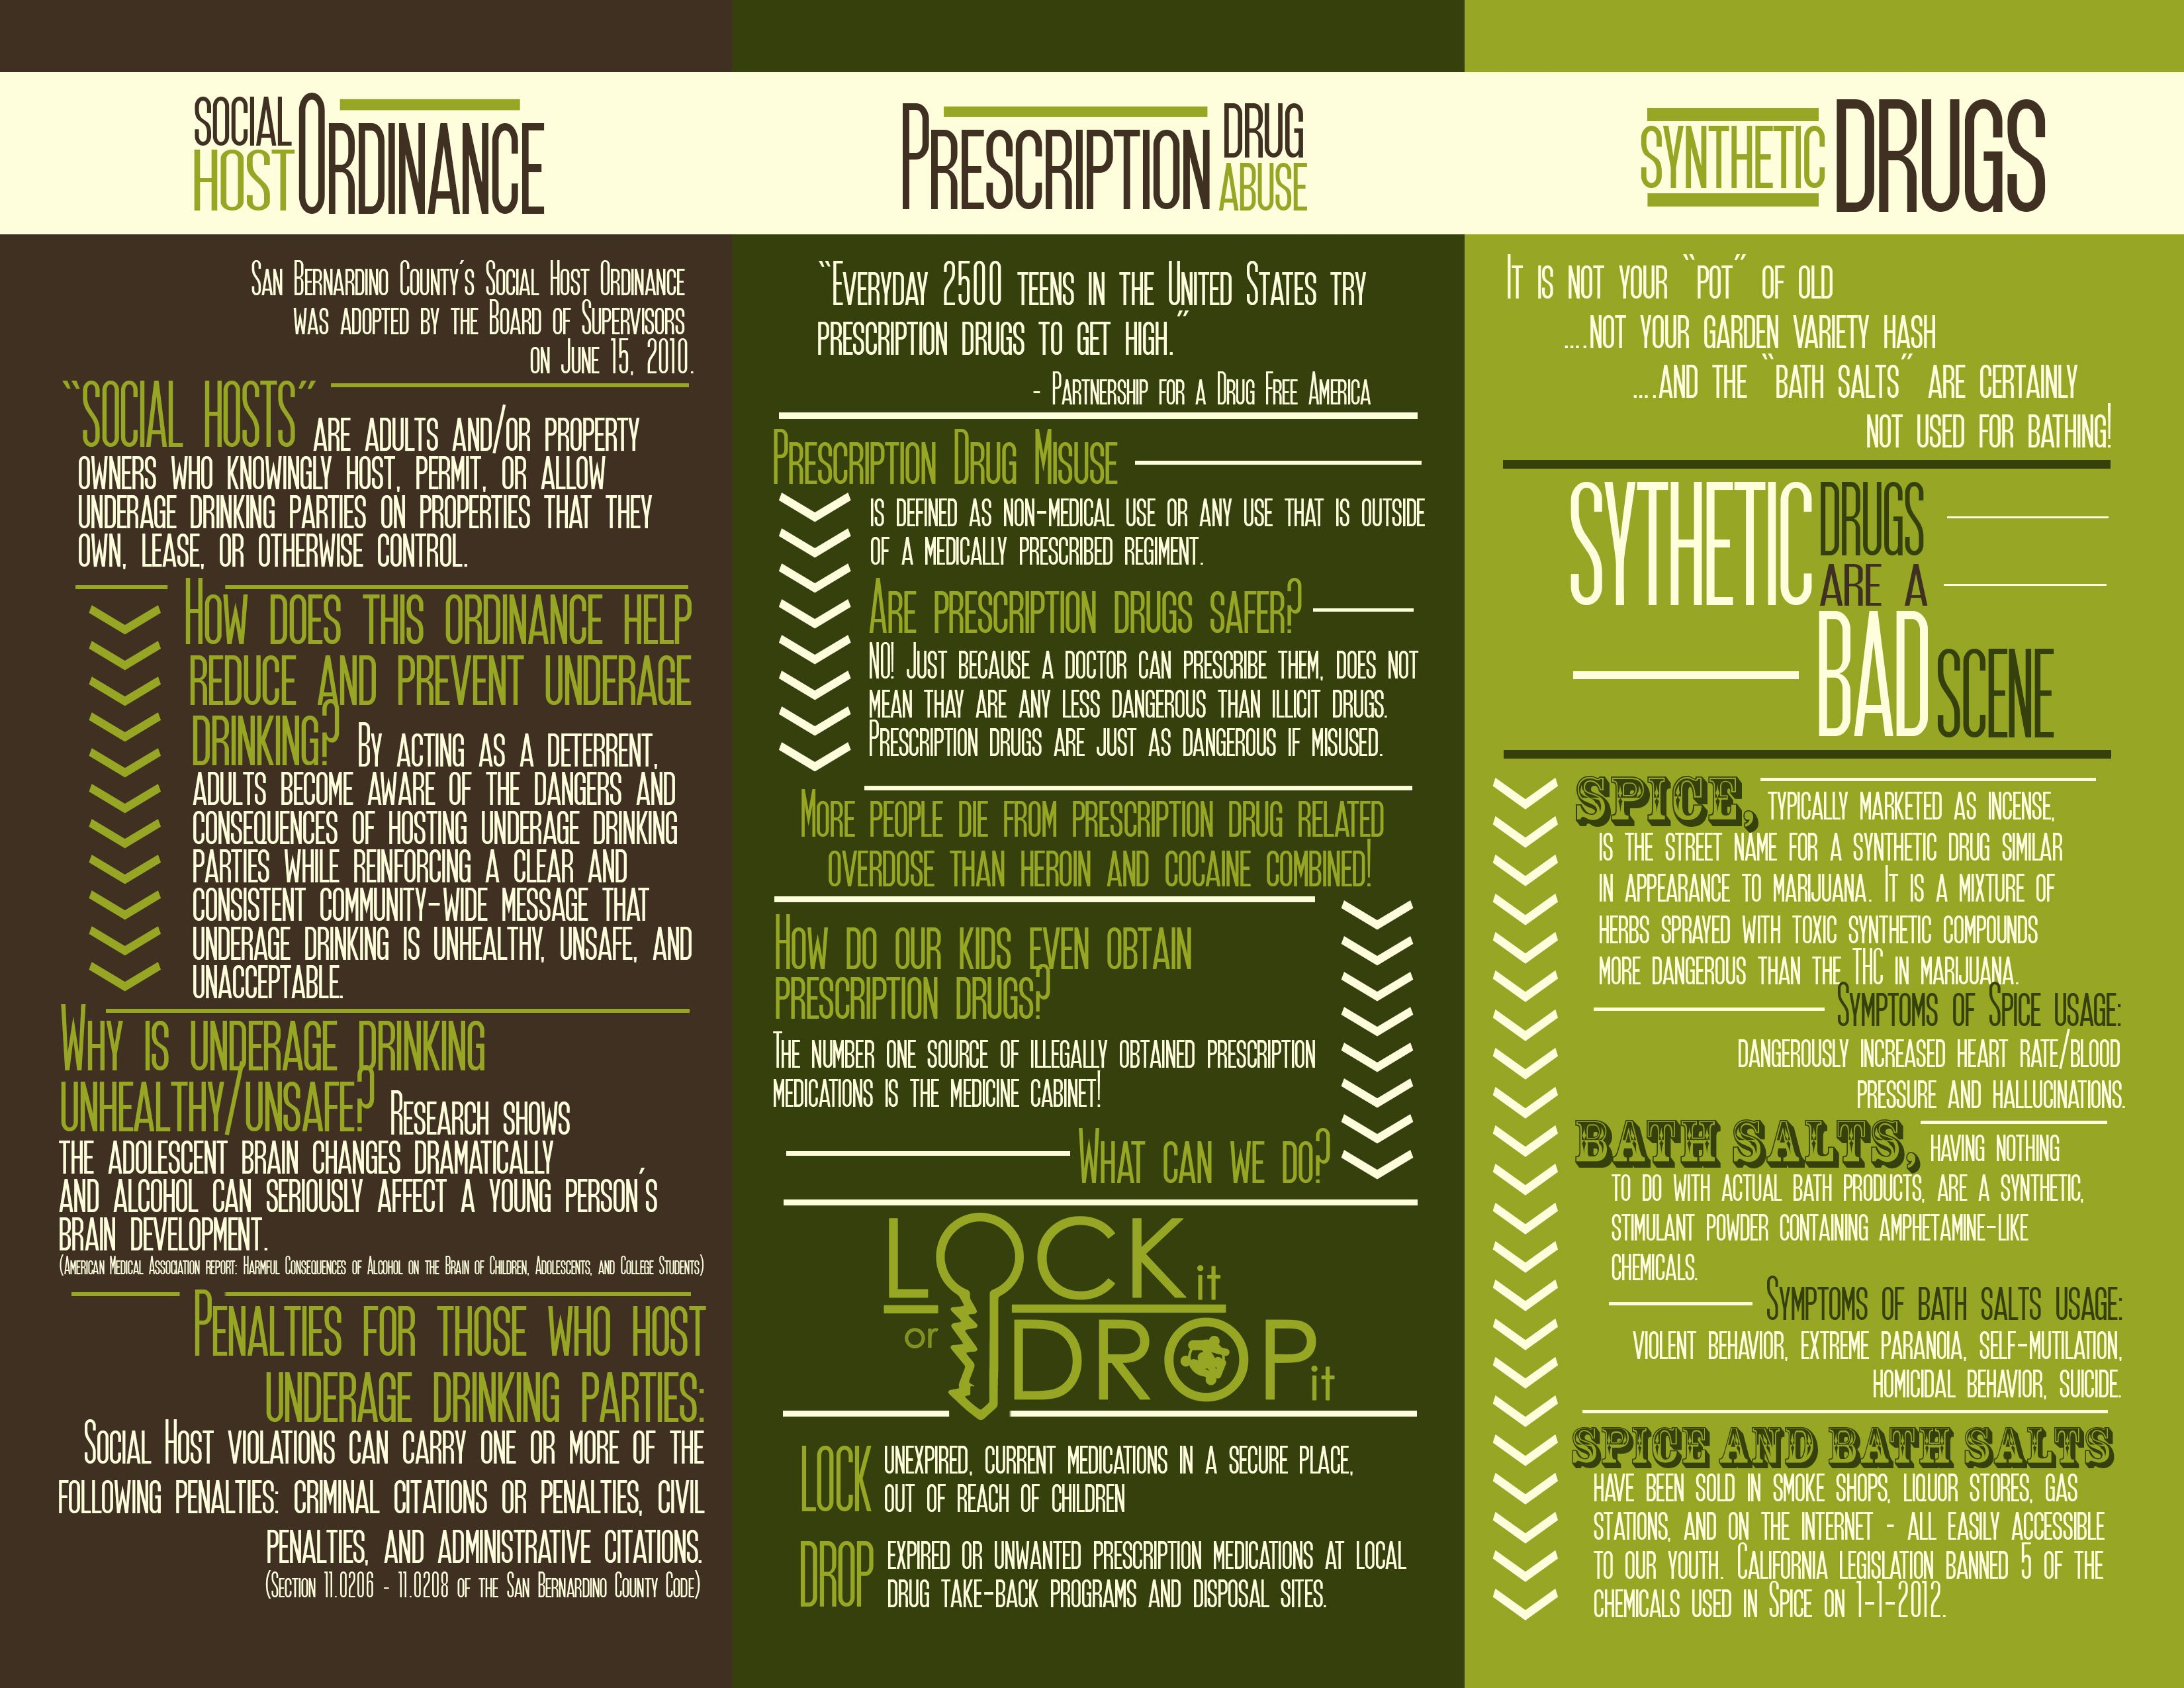 Some Information About The Dangers Of Prescription Drug